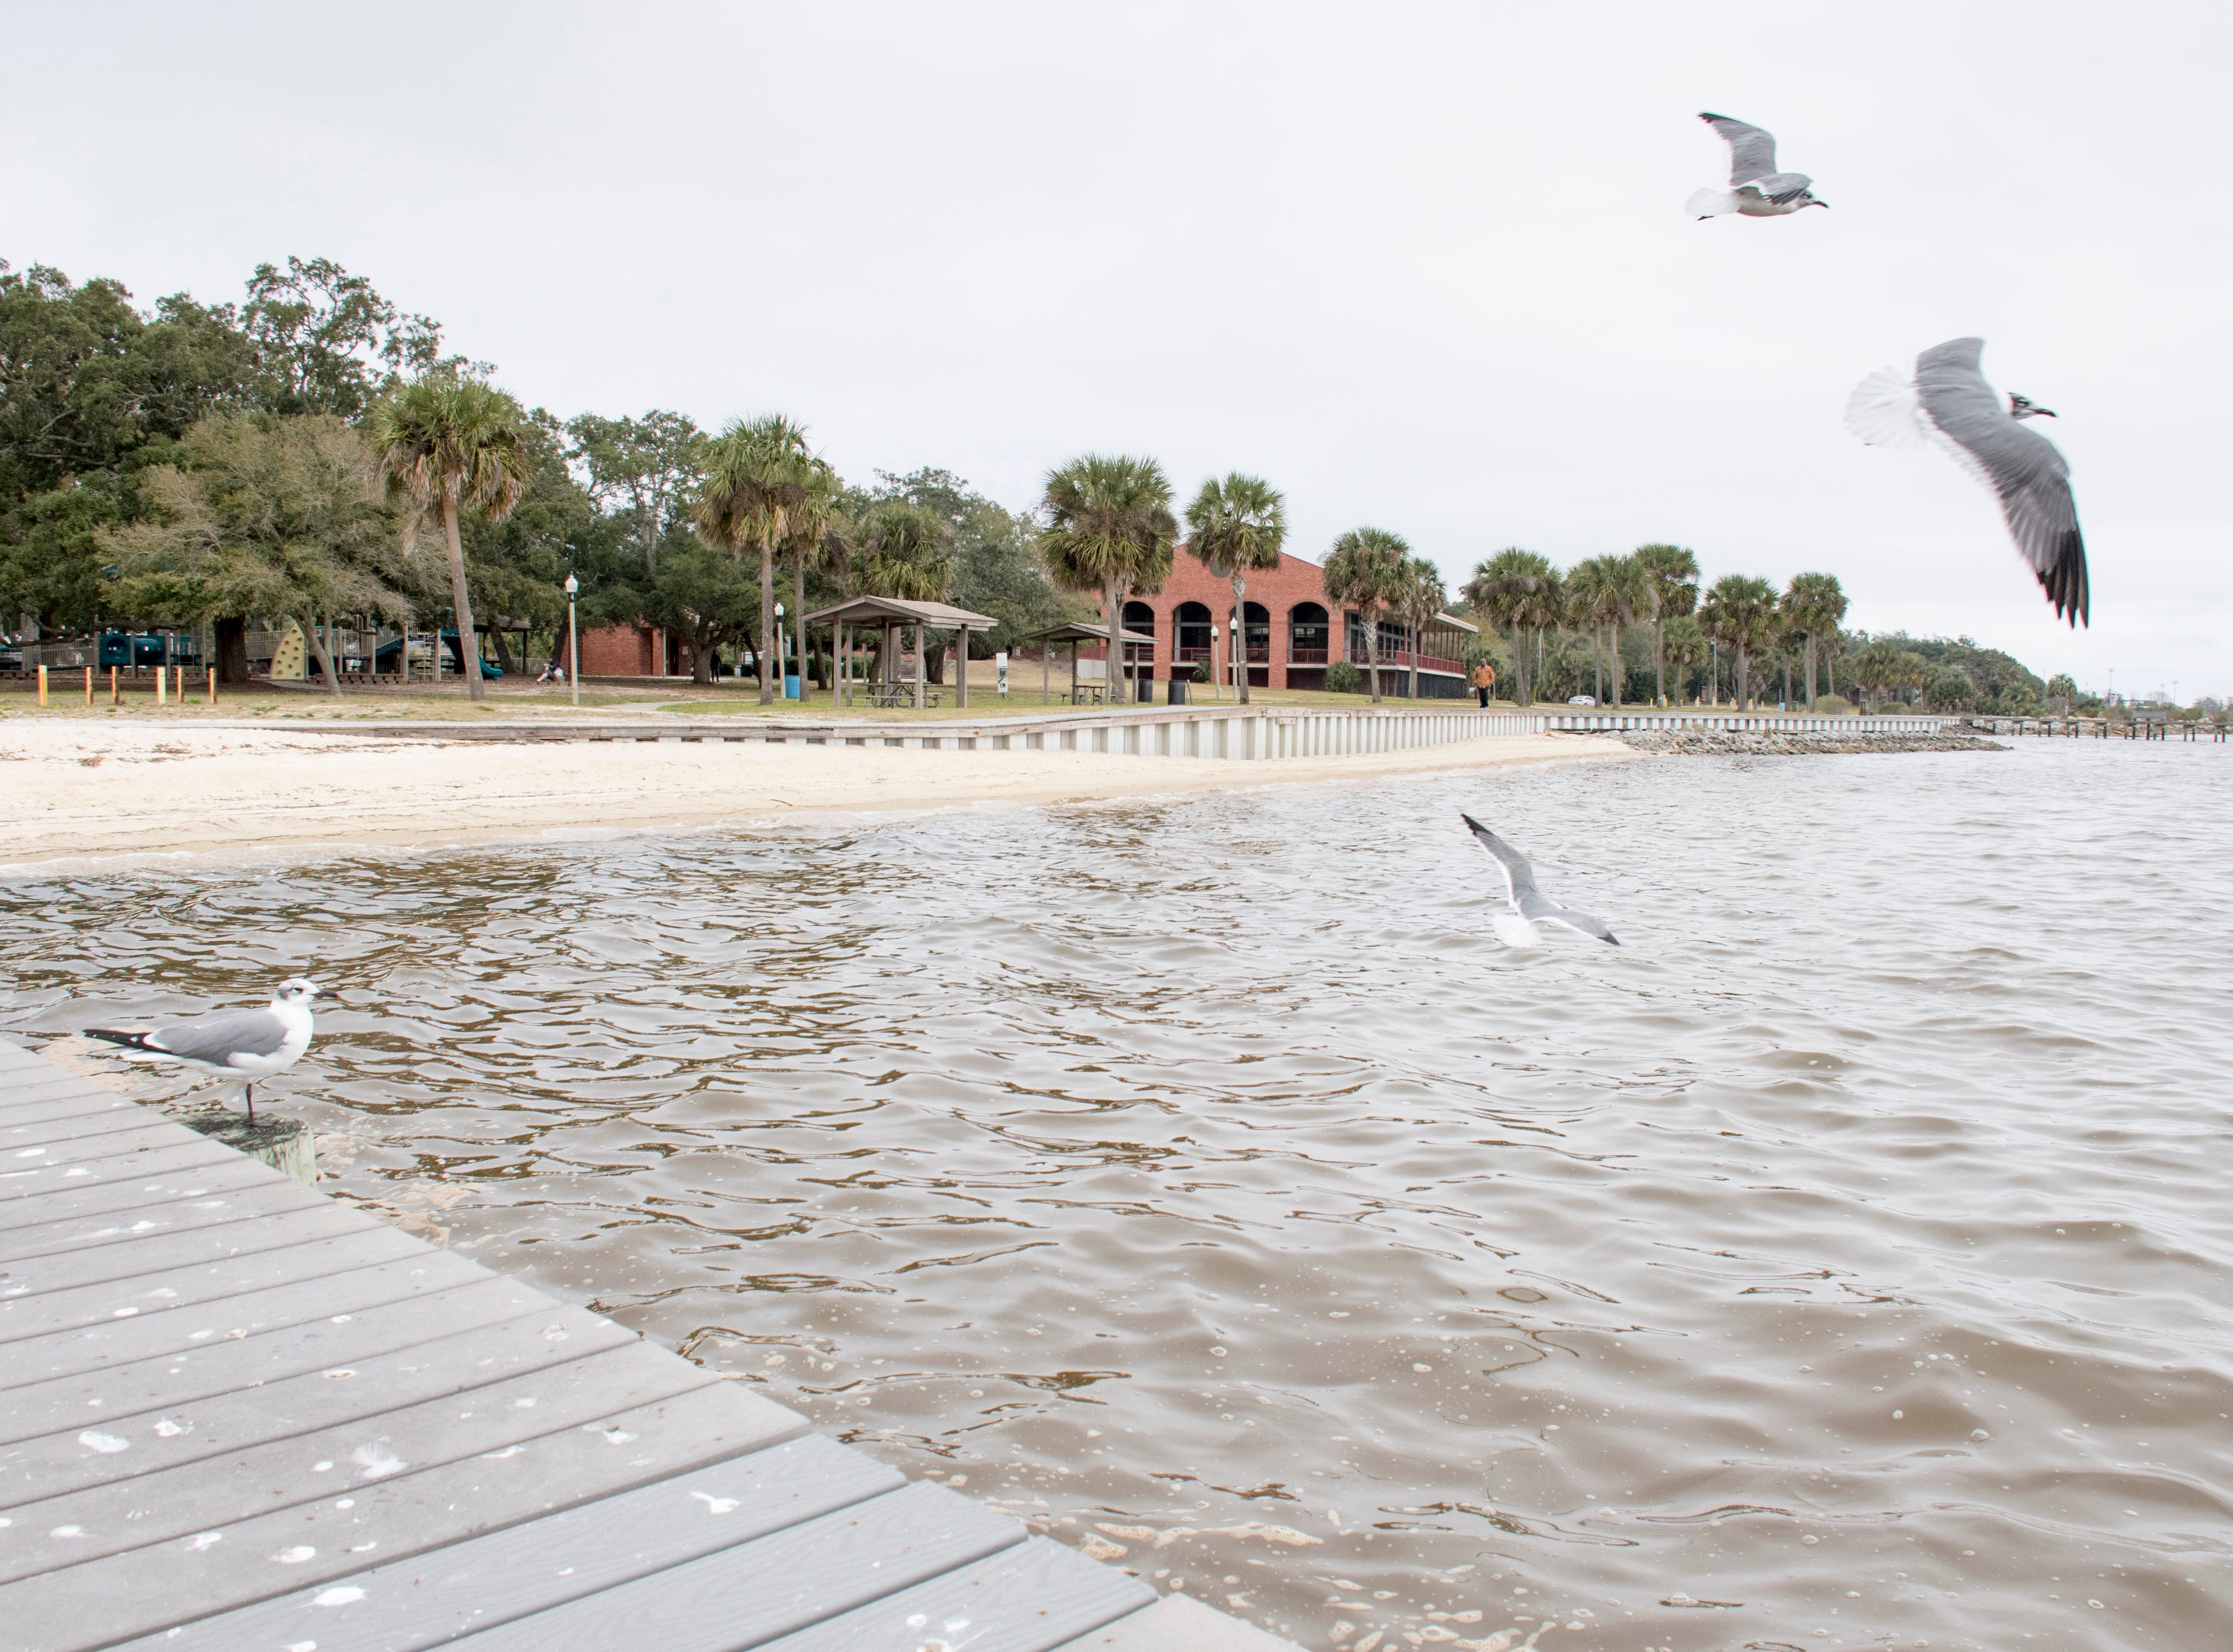 Sanders Beach in Pensacola on Monday, February 4, 2019.  Pensacola Mayor Grover Robinson plans to ask the Pensacola City Council for $60,000 to have the landscape architecture firm SCAPE study ways to improvement access, connectivity and resiliency along the waterfront between Joe Patti's Seafood to Bayou Chico. If approved, the funding would extend the boundaries of an existing SCAPE funded by Pensacola entrepreneur and philanthropist Quint Studer.